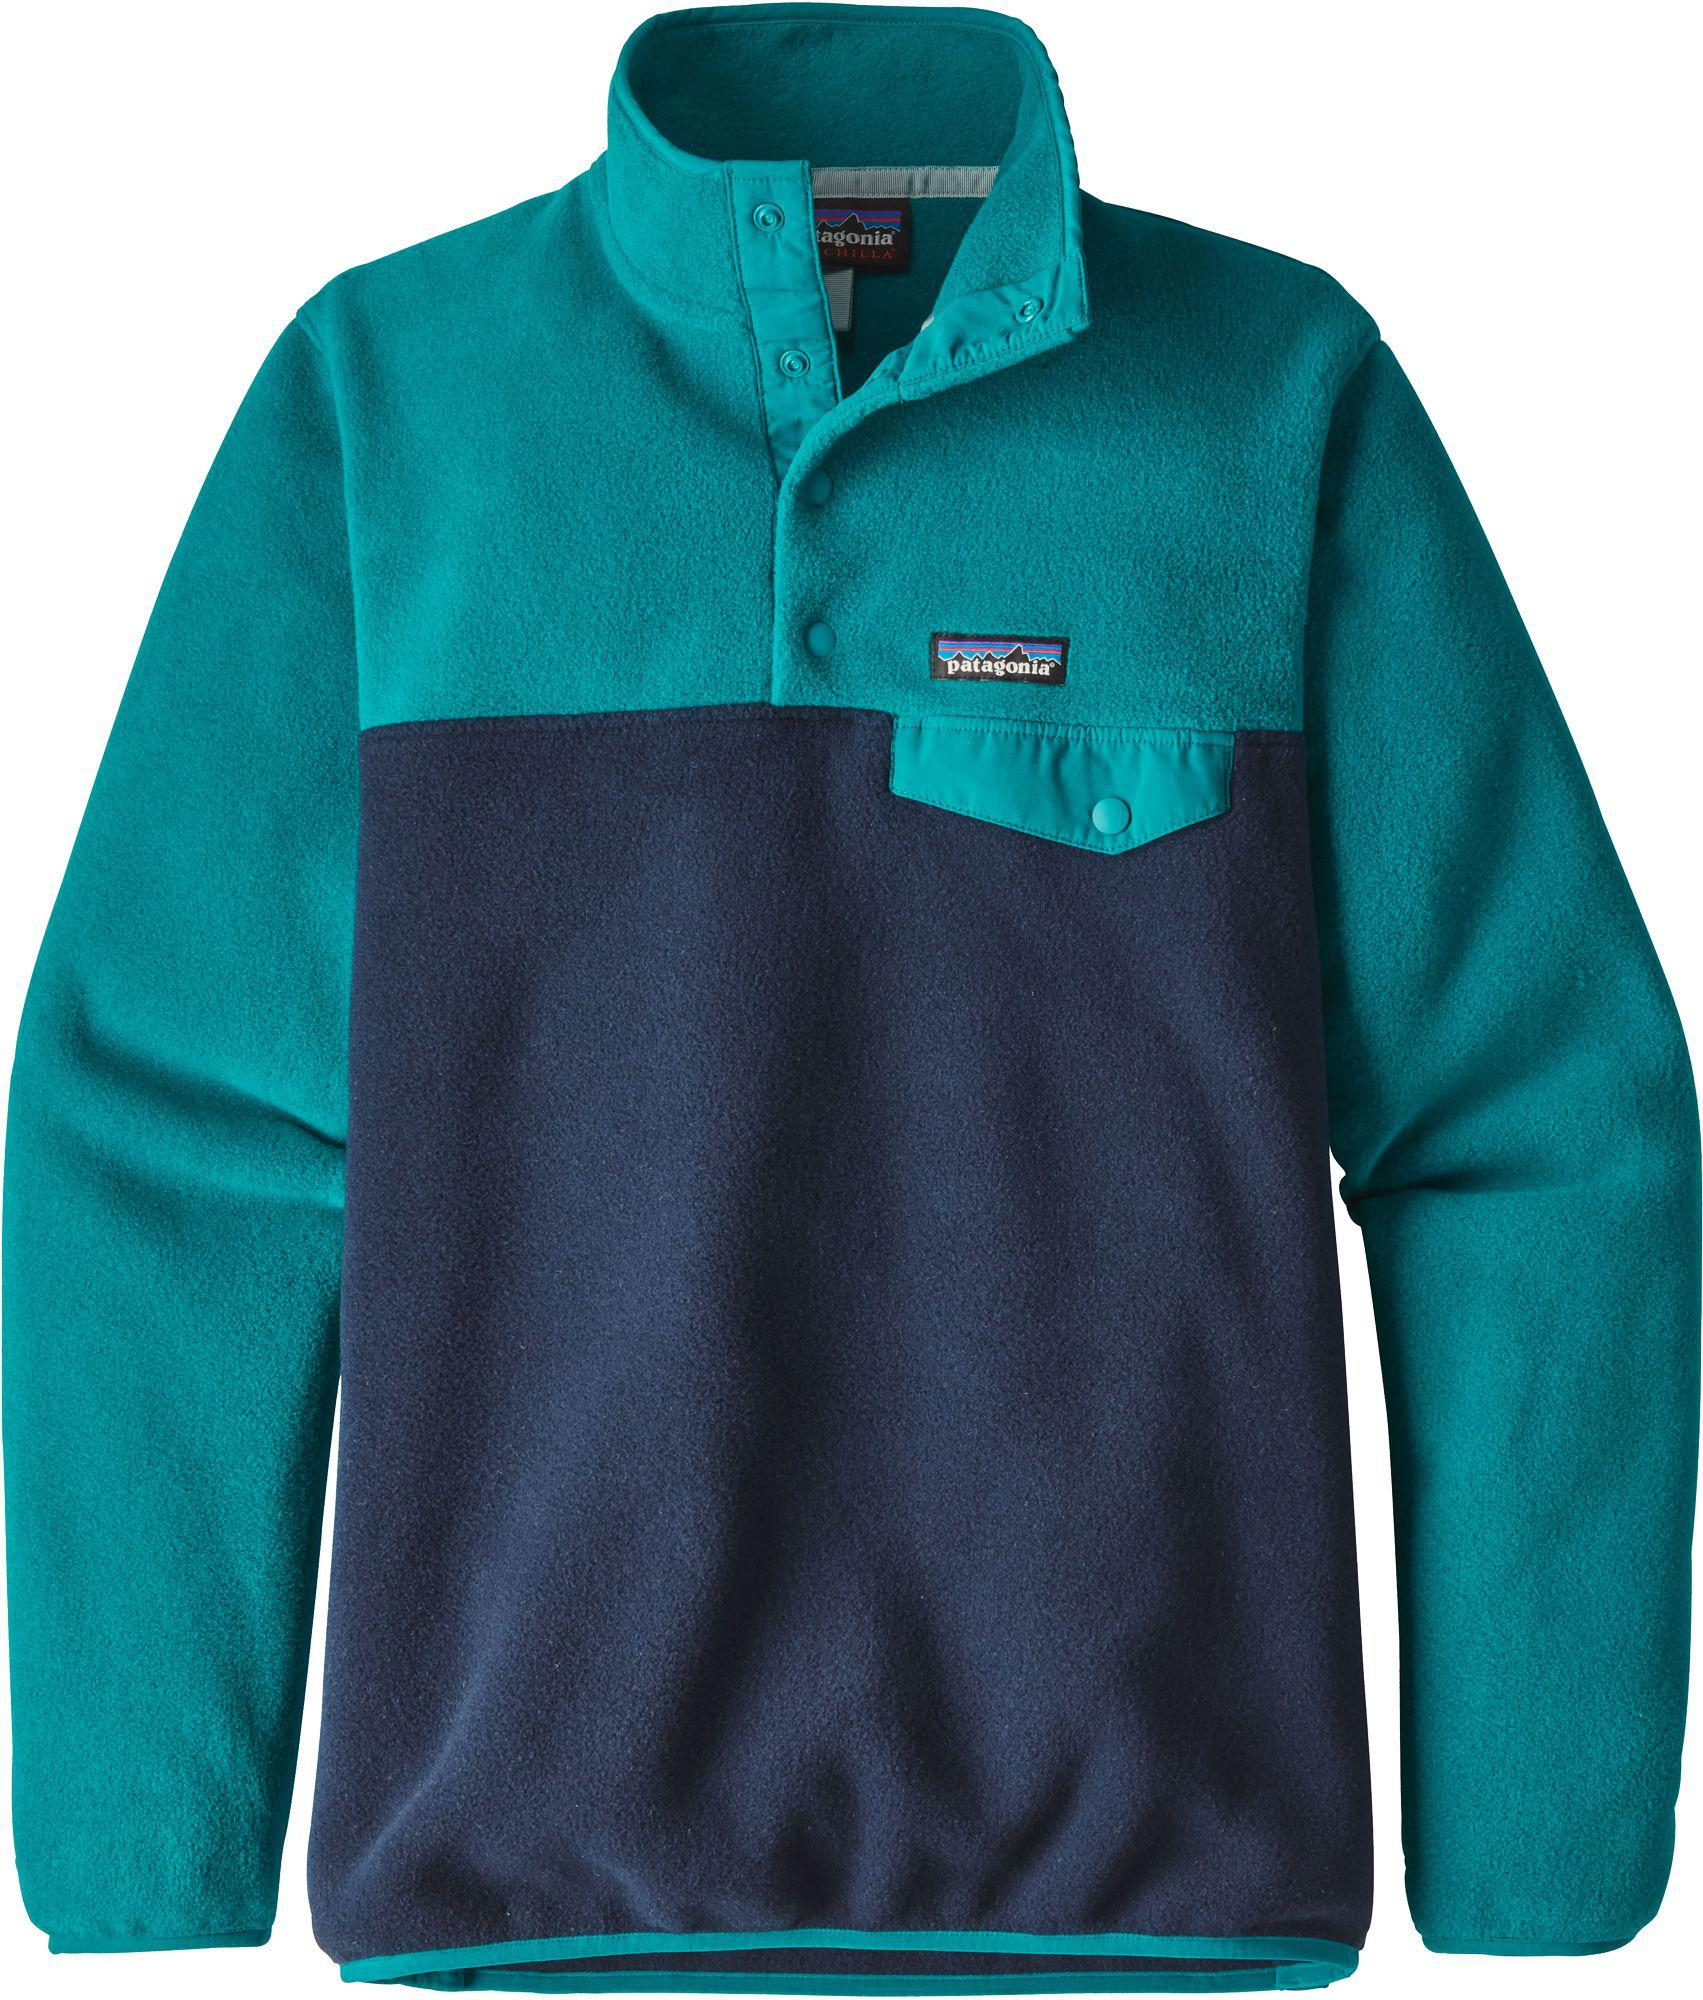 c47bcd3c818d Lyst - Patagonia Synchilla Snap-t Fleece Pullover in Blue for Men